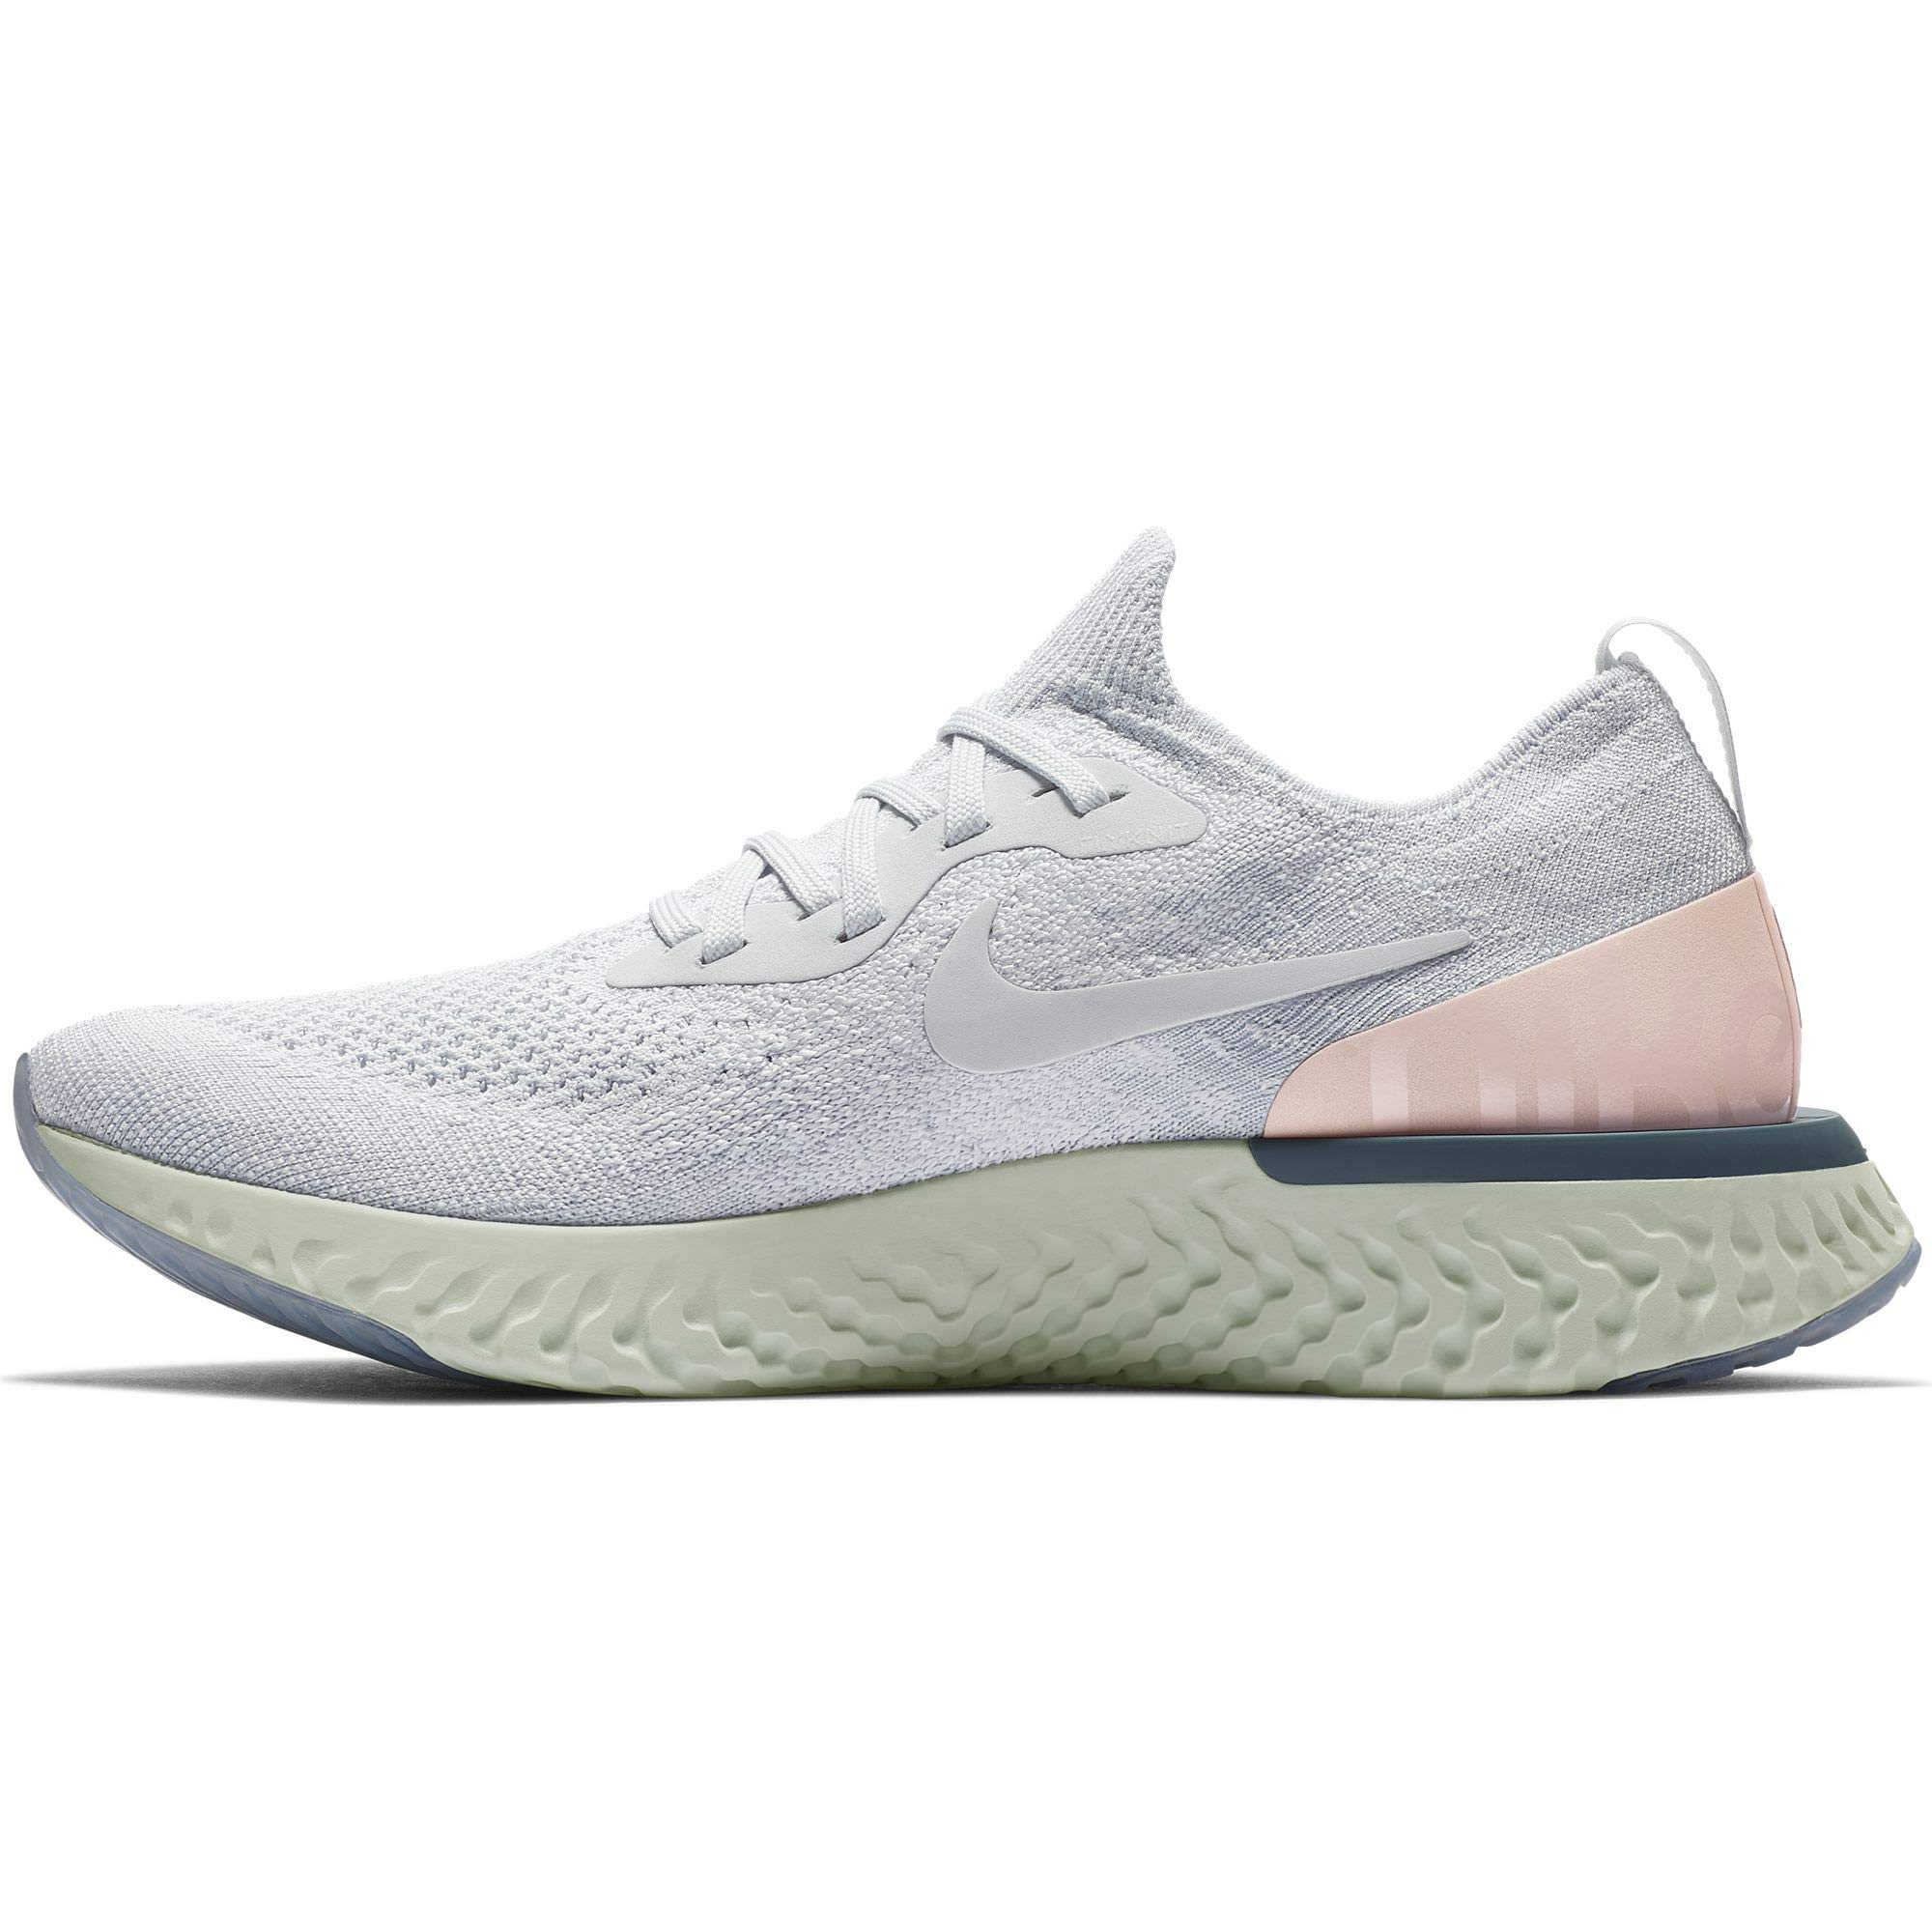 separation shoes 1fec6 99020 NIKE Epic React Flyknit Women s Running Shoe Pure Platinum Pure Platinum  11.0